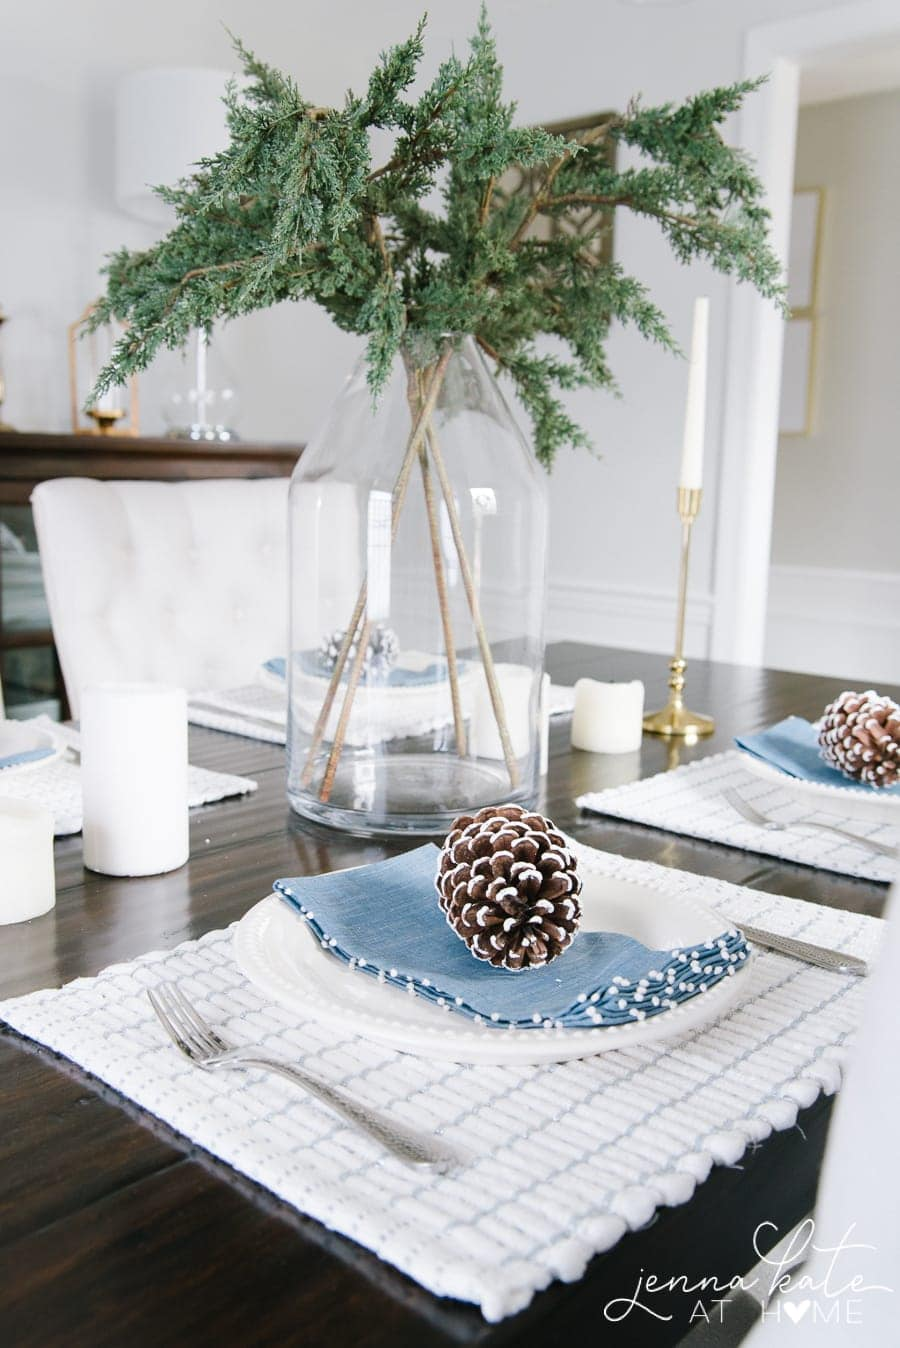 A complete look - pine cones, greenery, soft accents complete the winter tablescape